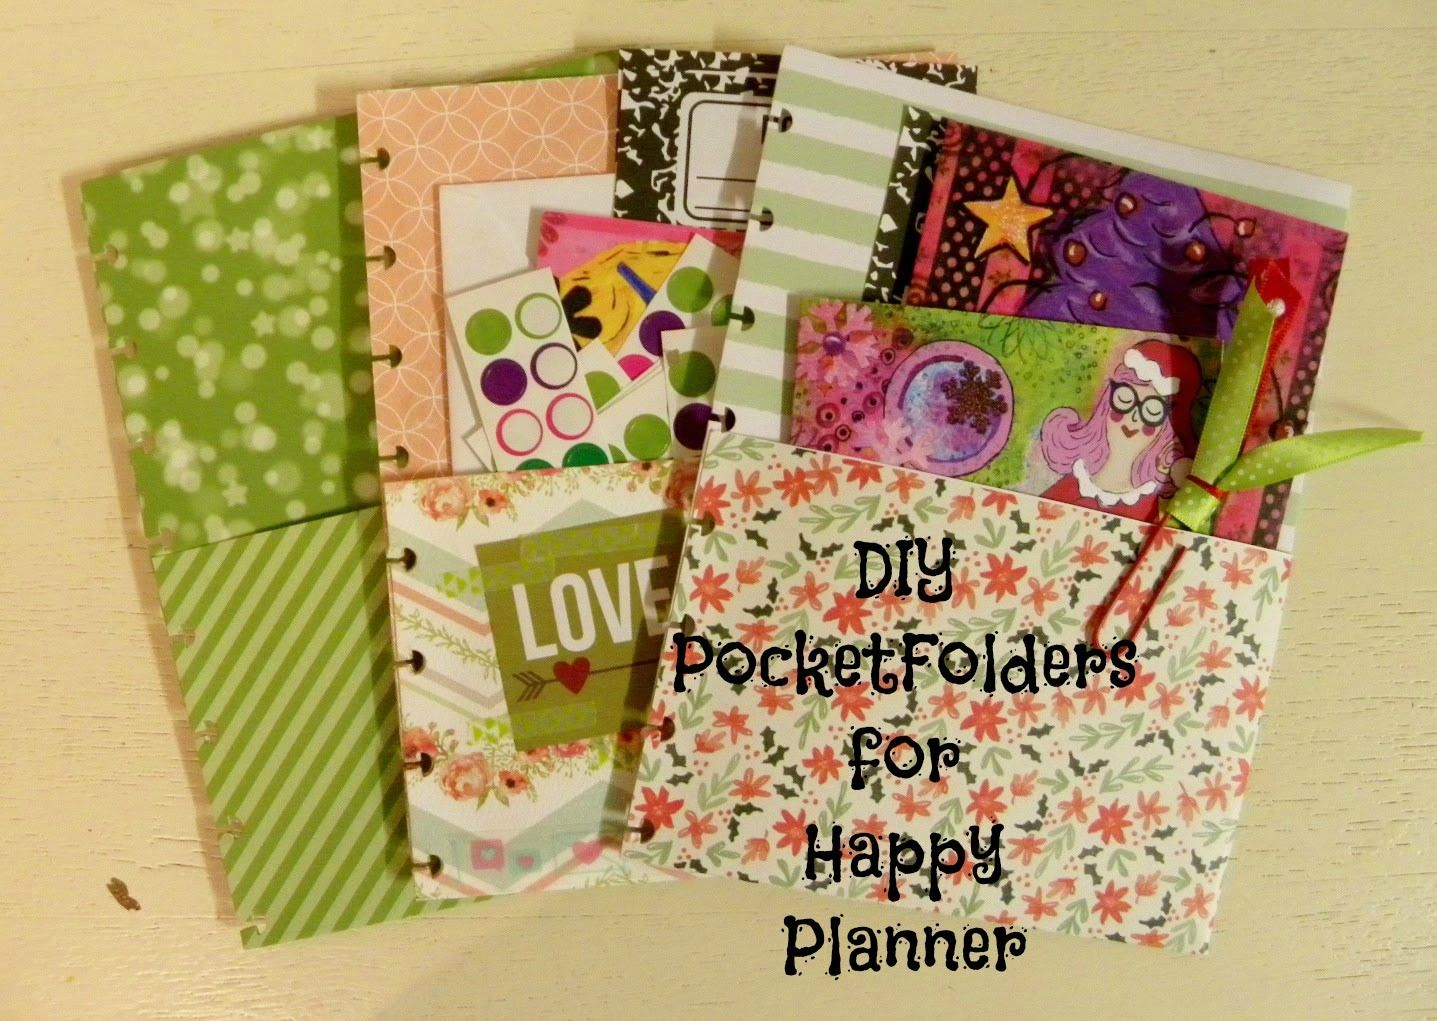 Diy pocket folder for happy planner planner ideas for Happy planner ideas